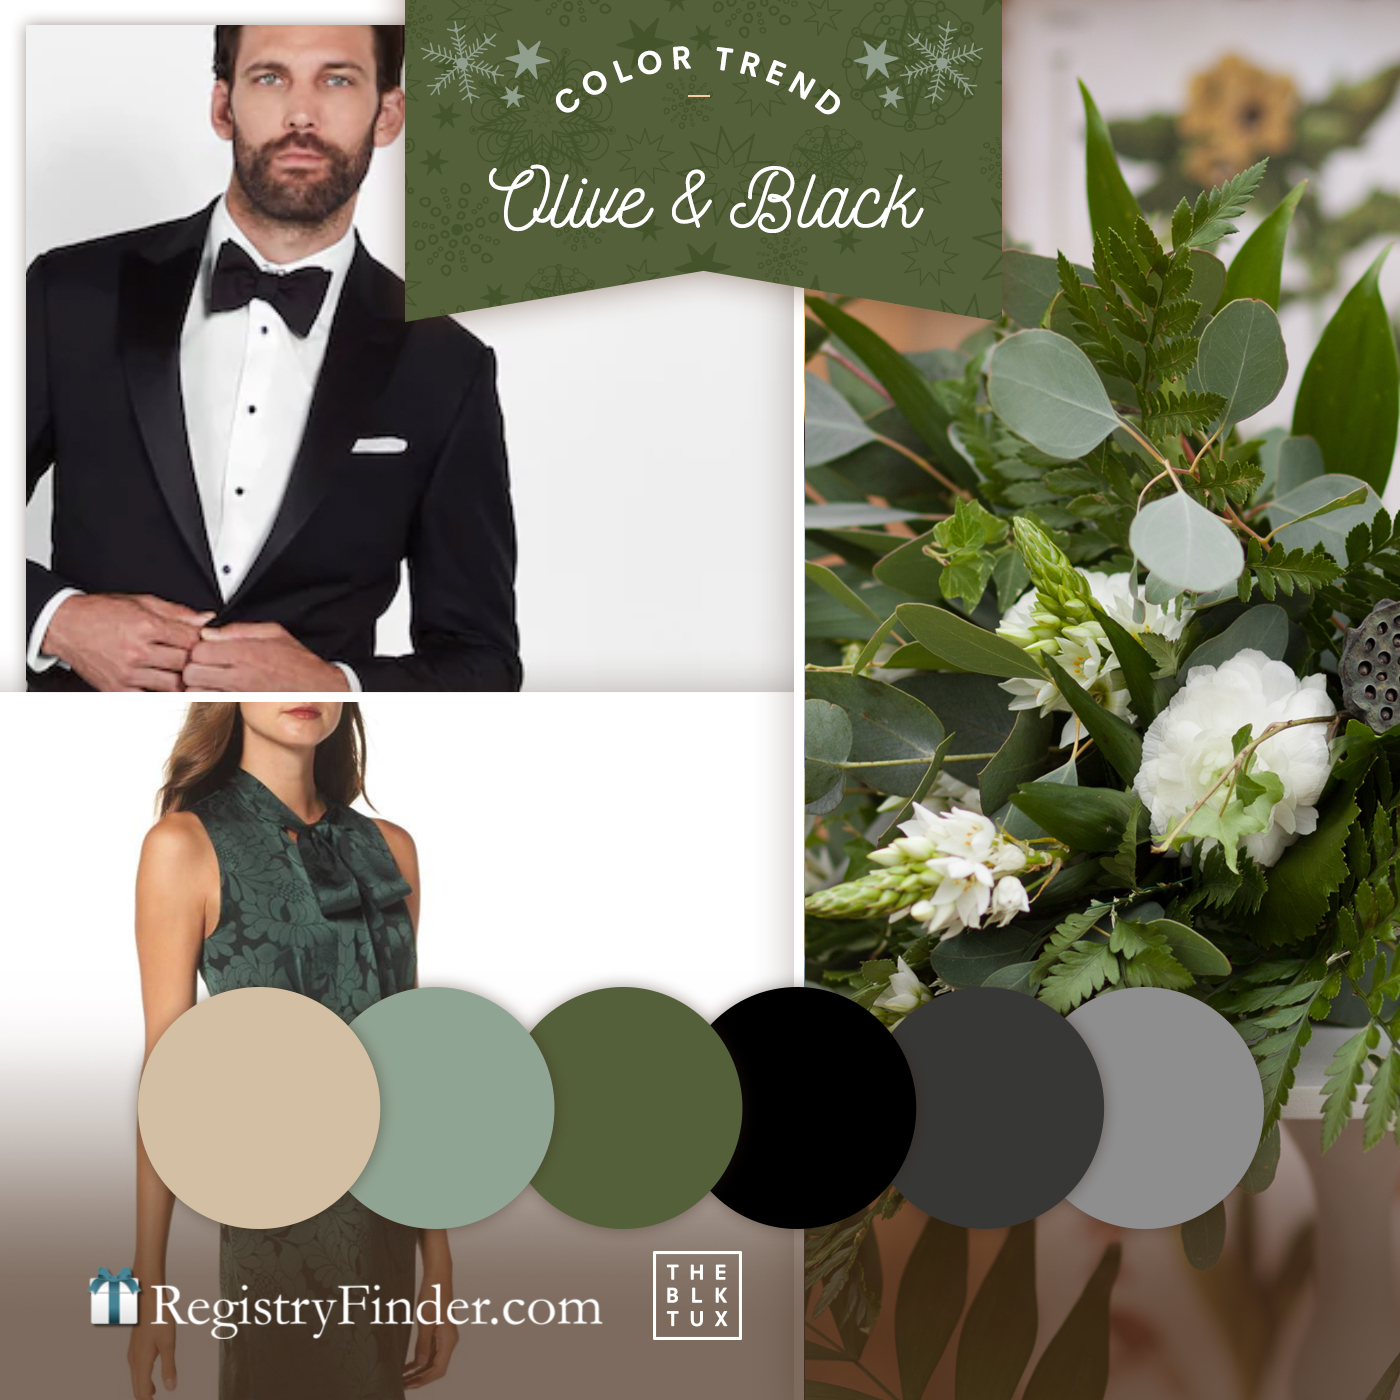 Olive and Black Wedding Colors